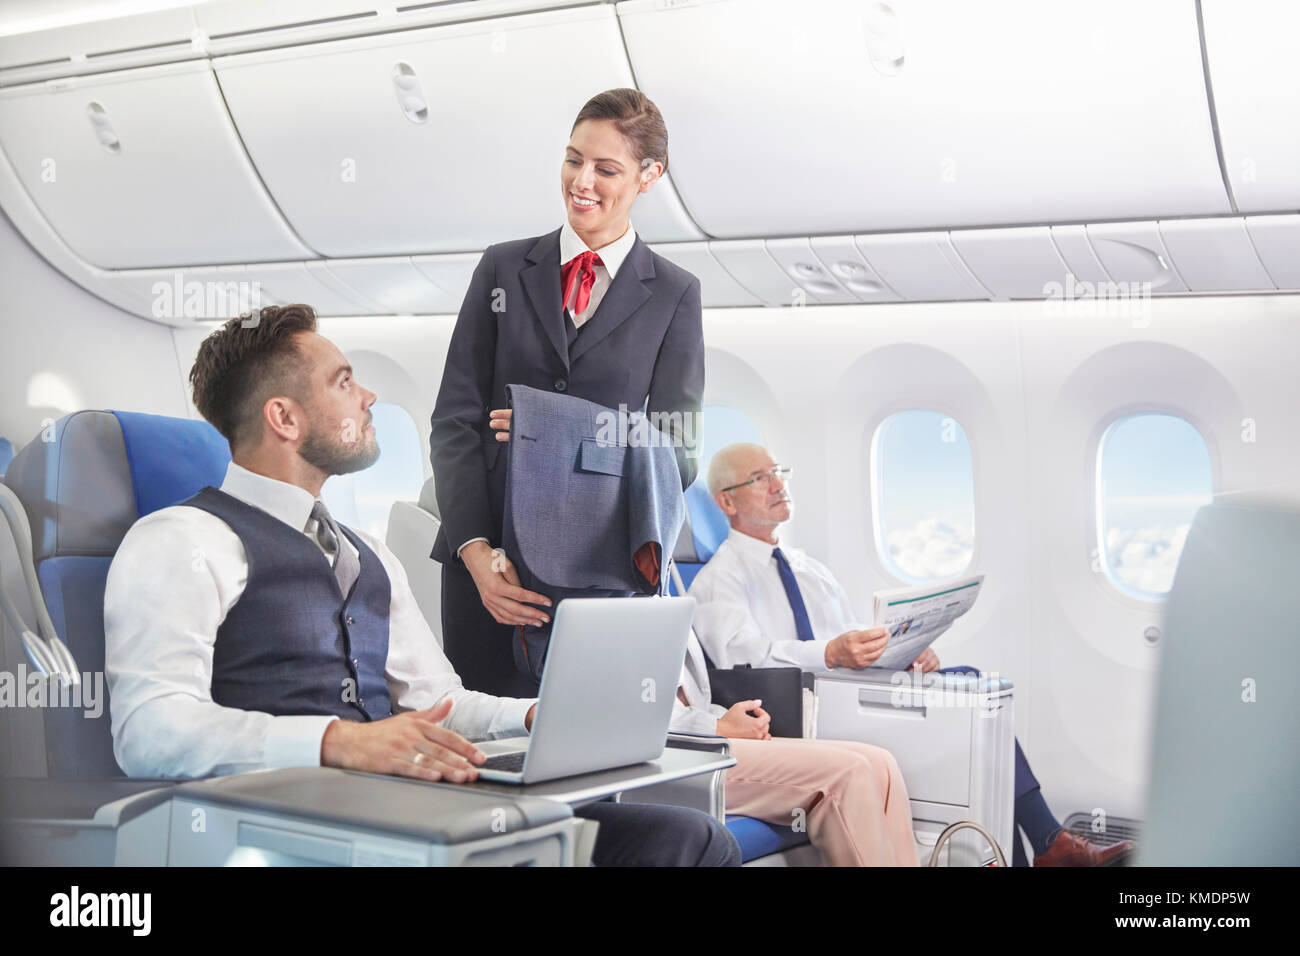 Flight attendant talking with businessman working at laptop on airplane - Stock Image